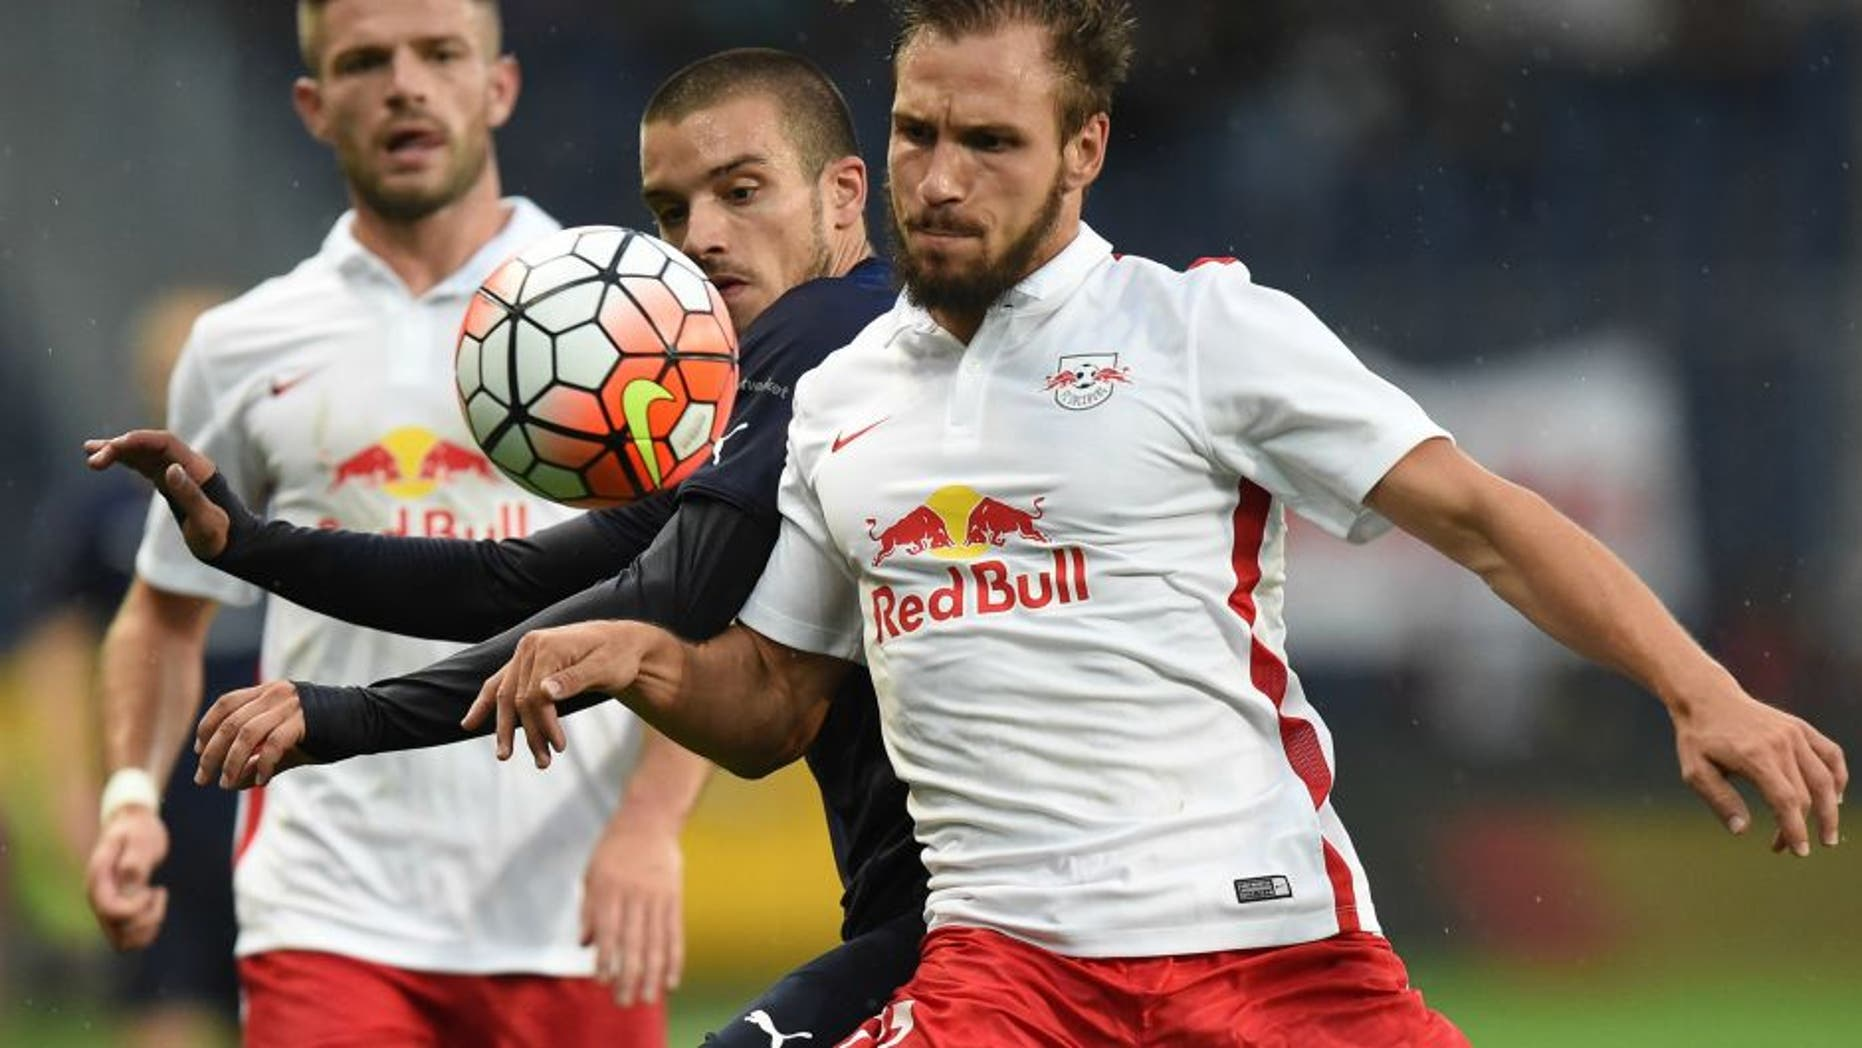 Salzburg's Andreas Ulmer (R) and Malmo's Vladimir Rodic fight for a ball during the UEFA Champions League third qualifying round first leg football match between FC Red Bull Salzburg and Malmo FF at the Red Bull Arena in Salzburg, Austria, on July 29, 2015. Salzburg won the match 2-0. AFP PHOTO / JOE KLAMAR (Photo credit should read JOE KLAMAR/AFP/Getty Images)